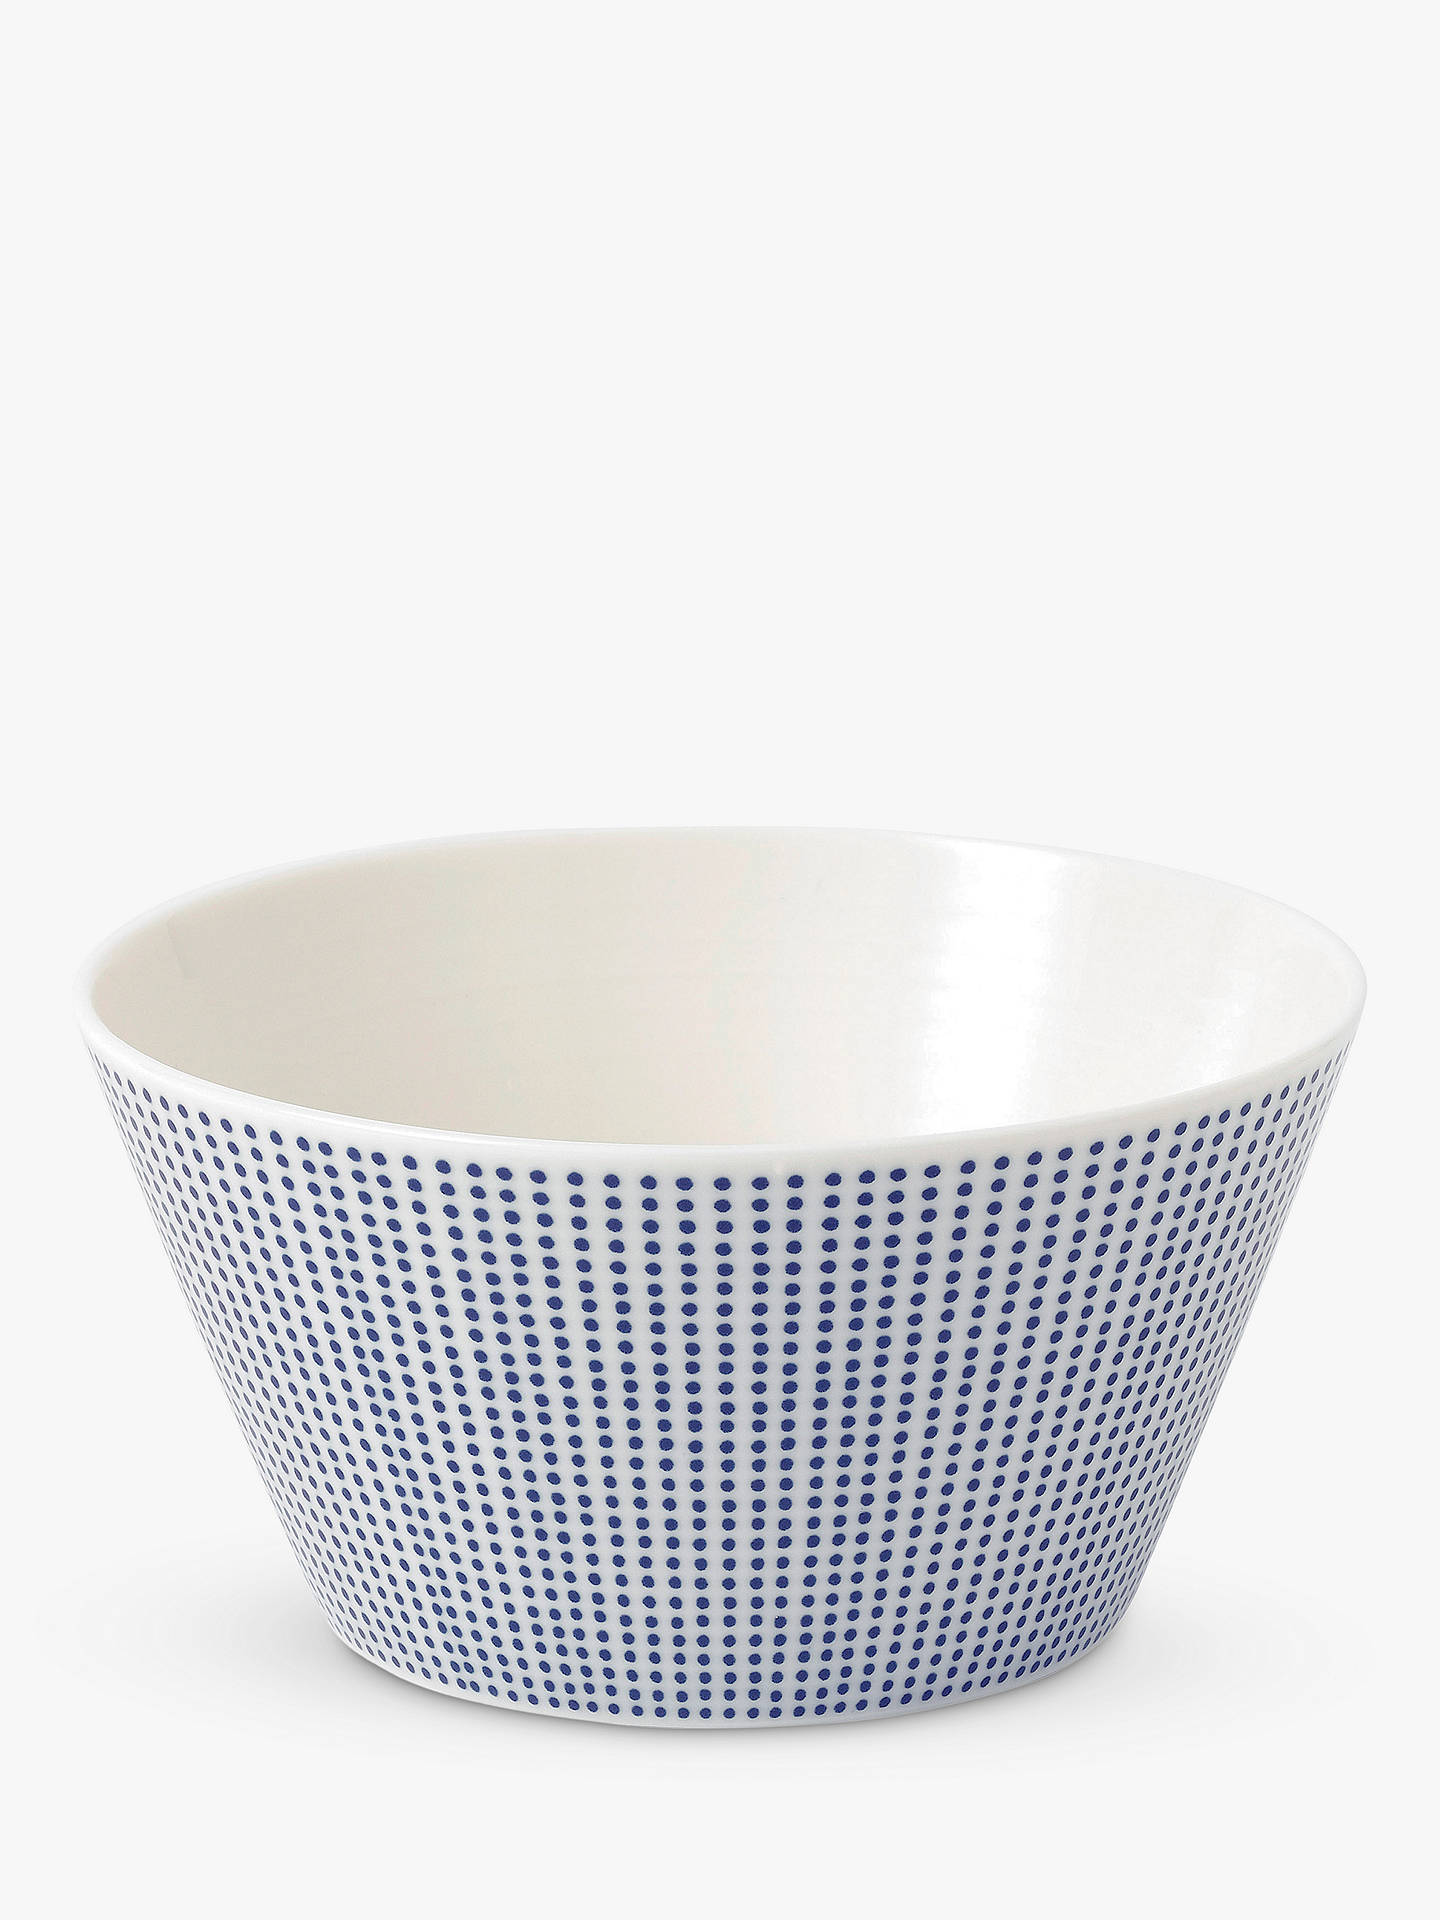 BuyRoyal Doulton Pacific Porcelain Cereal Bowl, 640ml, Blue Online at johnlewis.com